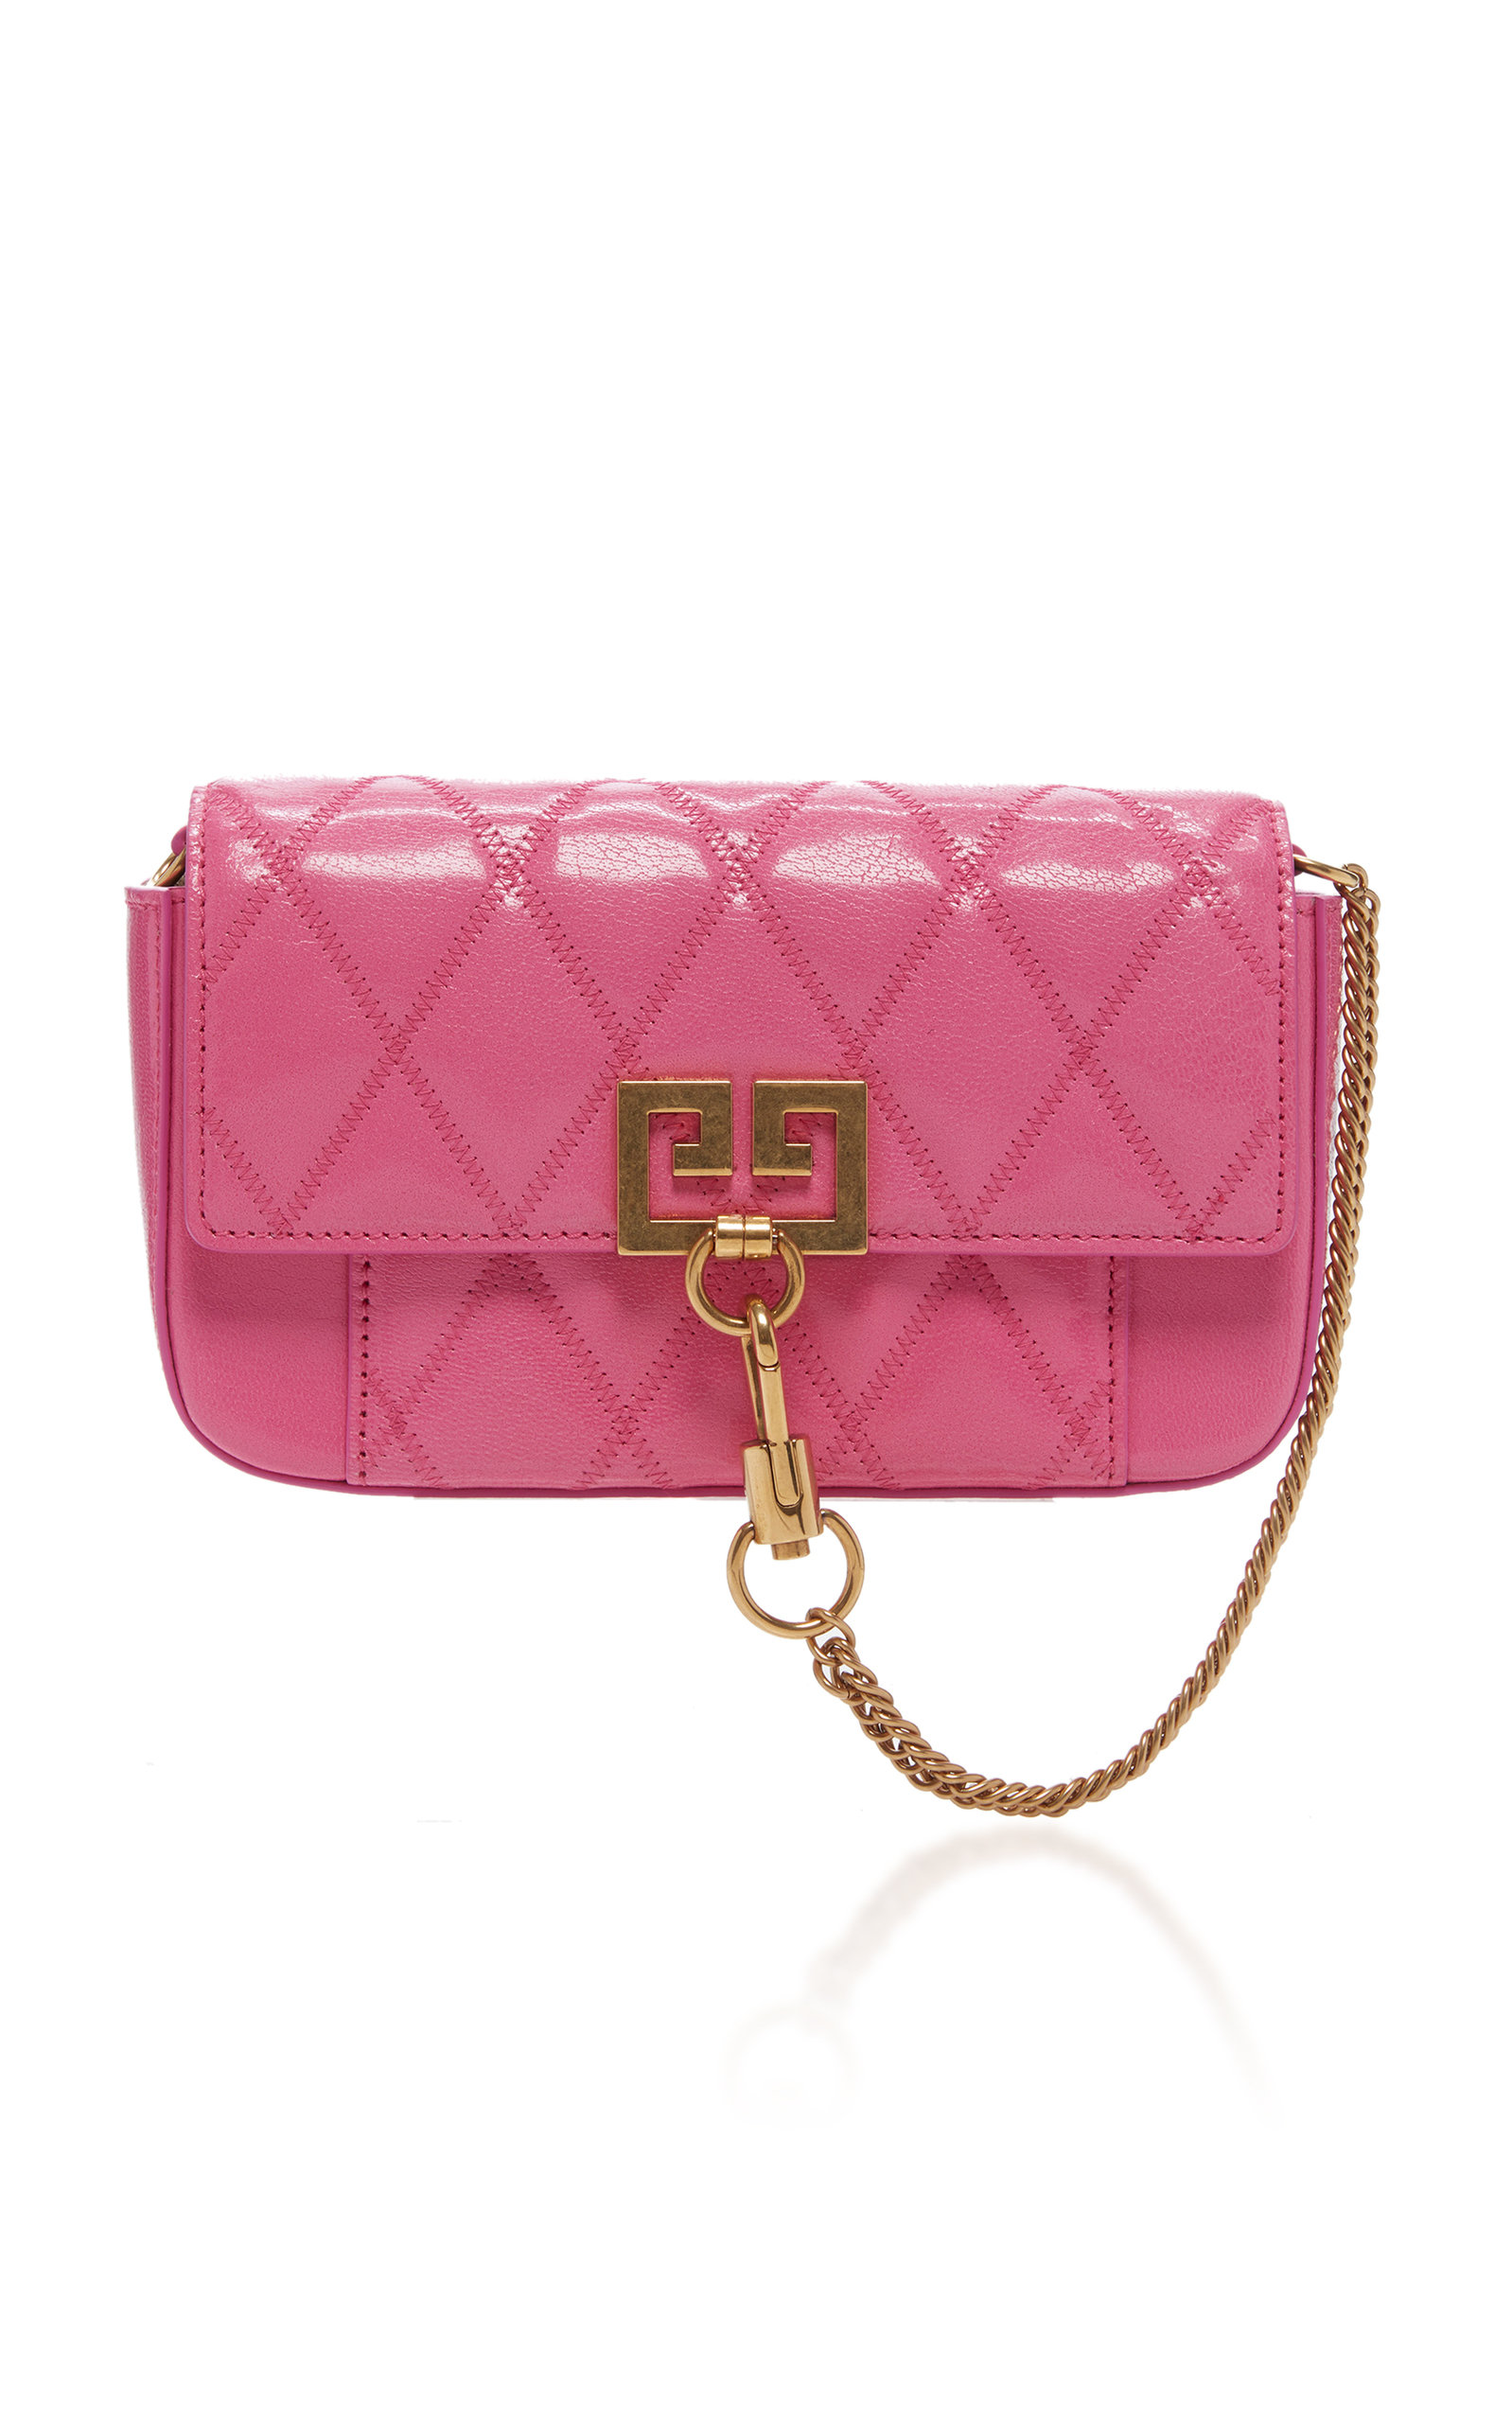 Givenchy Accessories Pocket Mini Quilted Leather Clutch